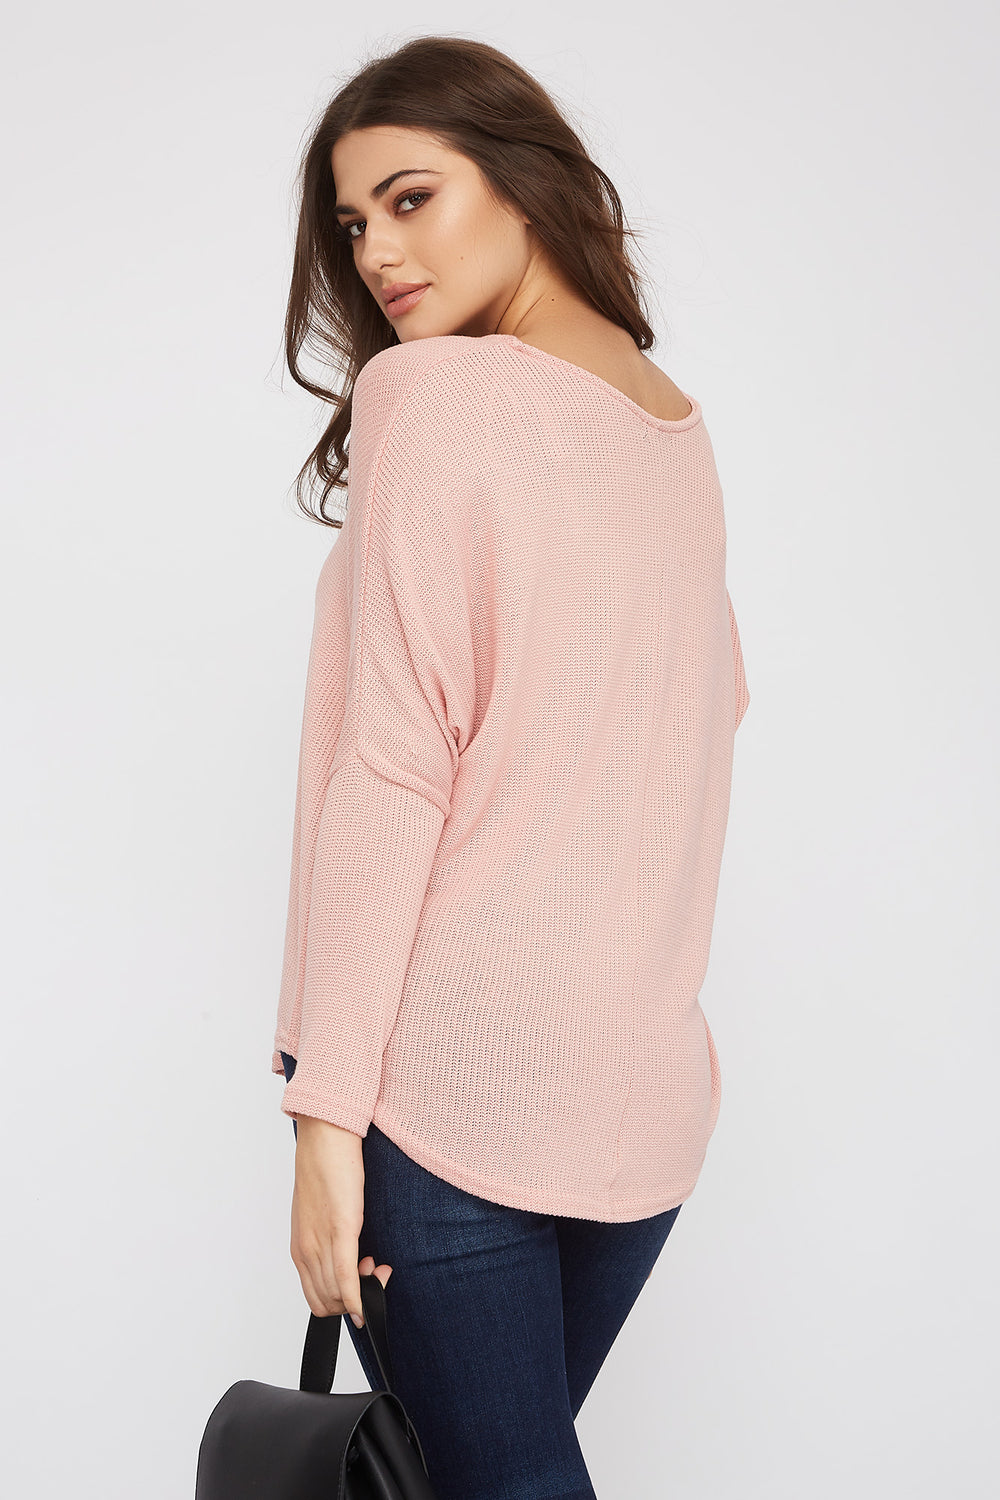 Knit Scoop Neck Long Sleeve Pink